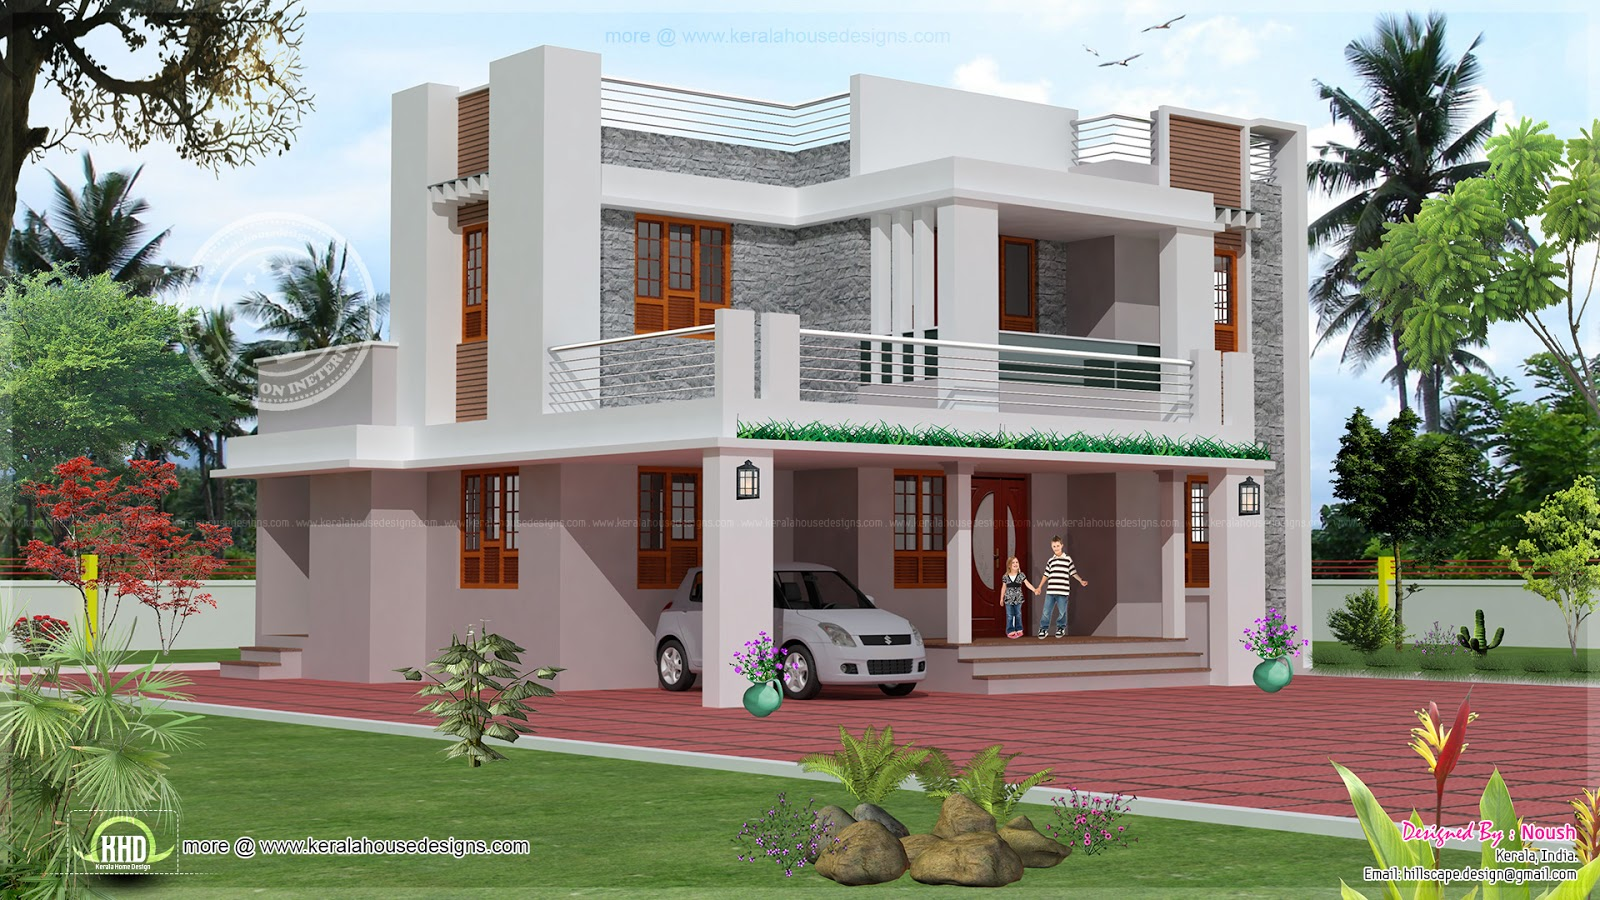 4 bedroom 2 story house exterior design home kerala plans for Simple house front design